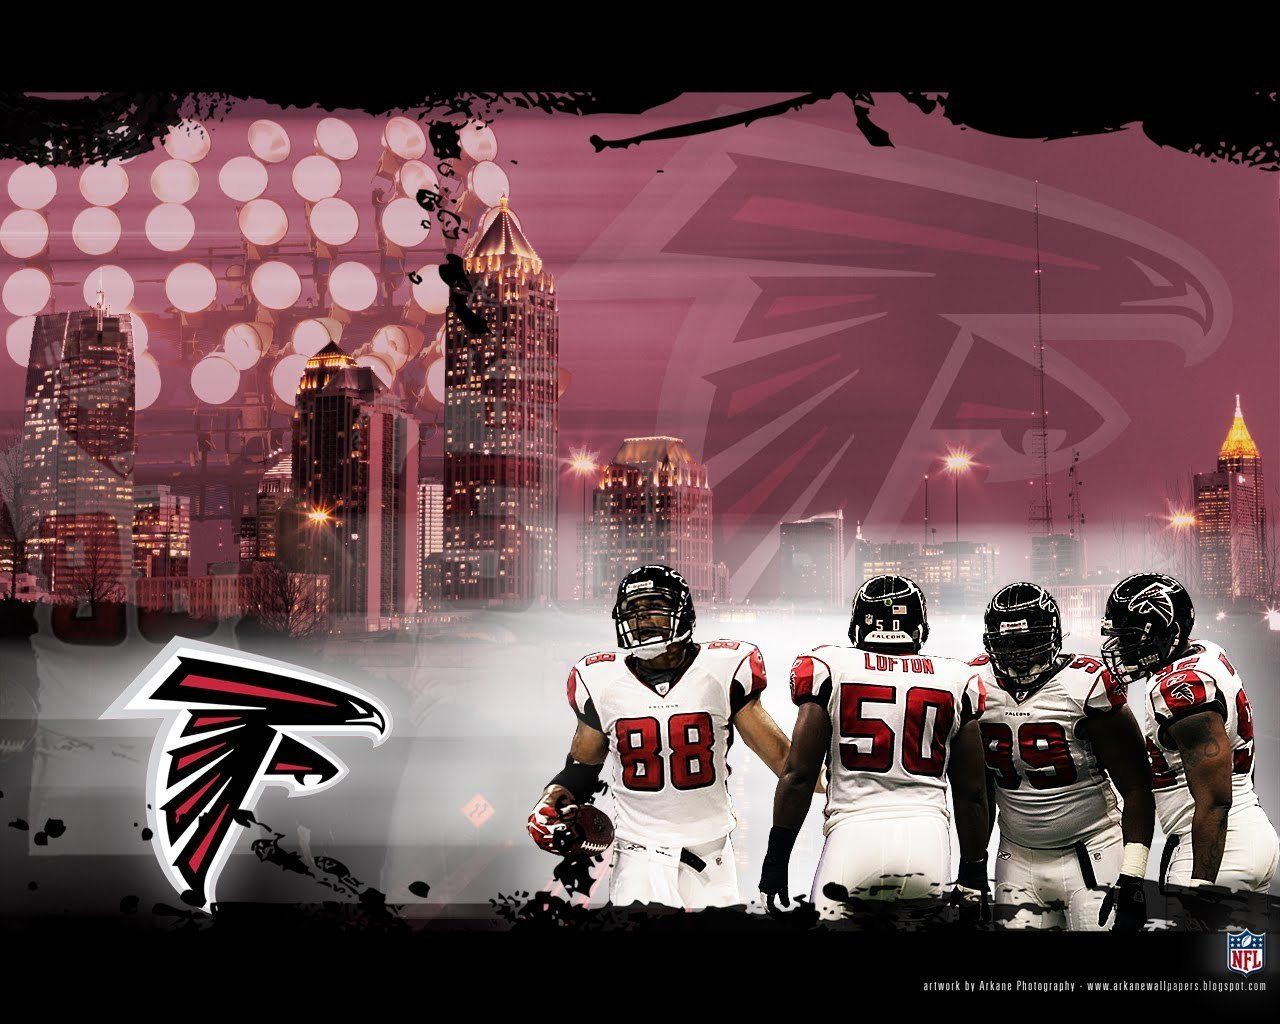 Atlanta Falcons Atlanta Falcons Atlanta Falcons Wallpaper 9173281 Fanpop Atlanta Falcons Wallpaper Atlanta Falcons Christmas Atlanta Falcons Football